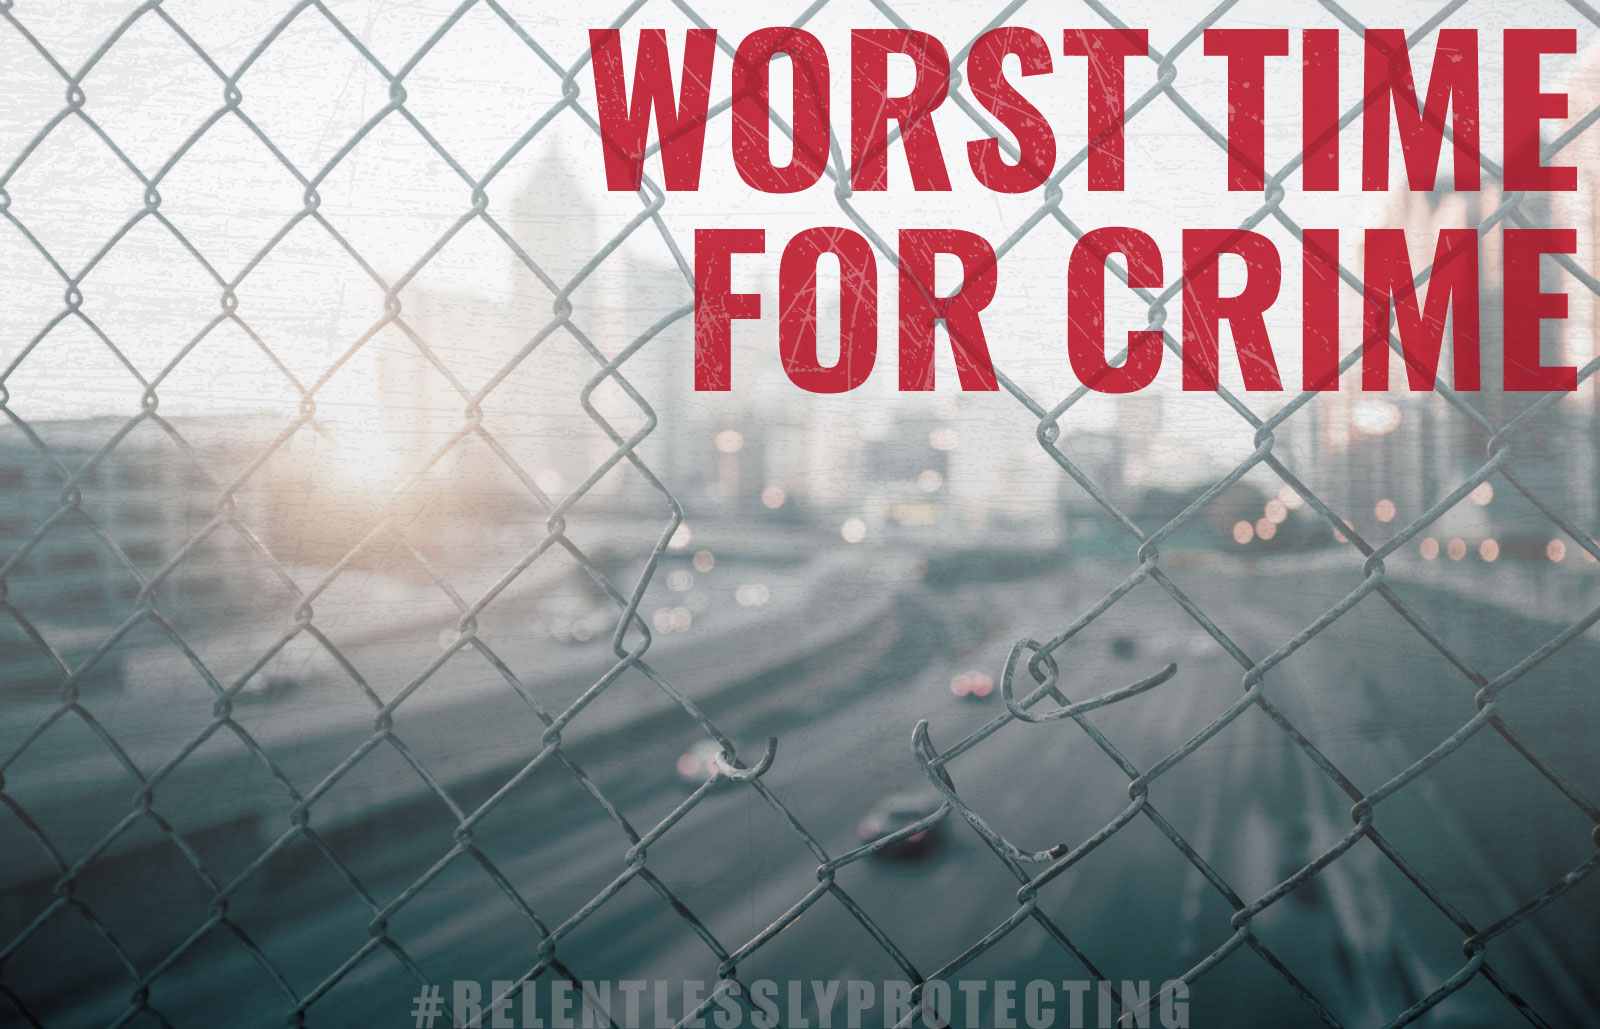 Worst Time for Crime